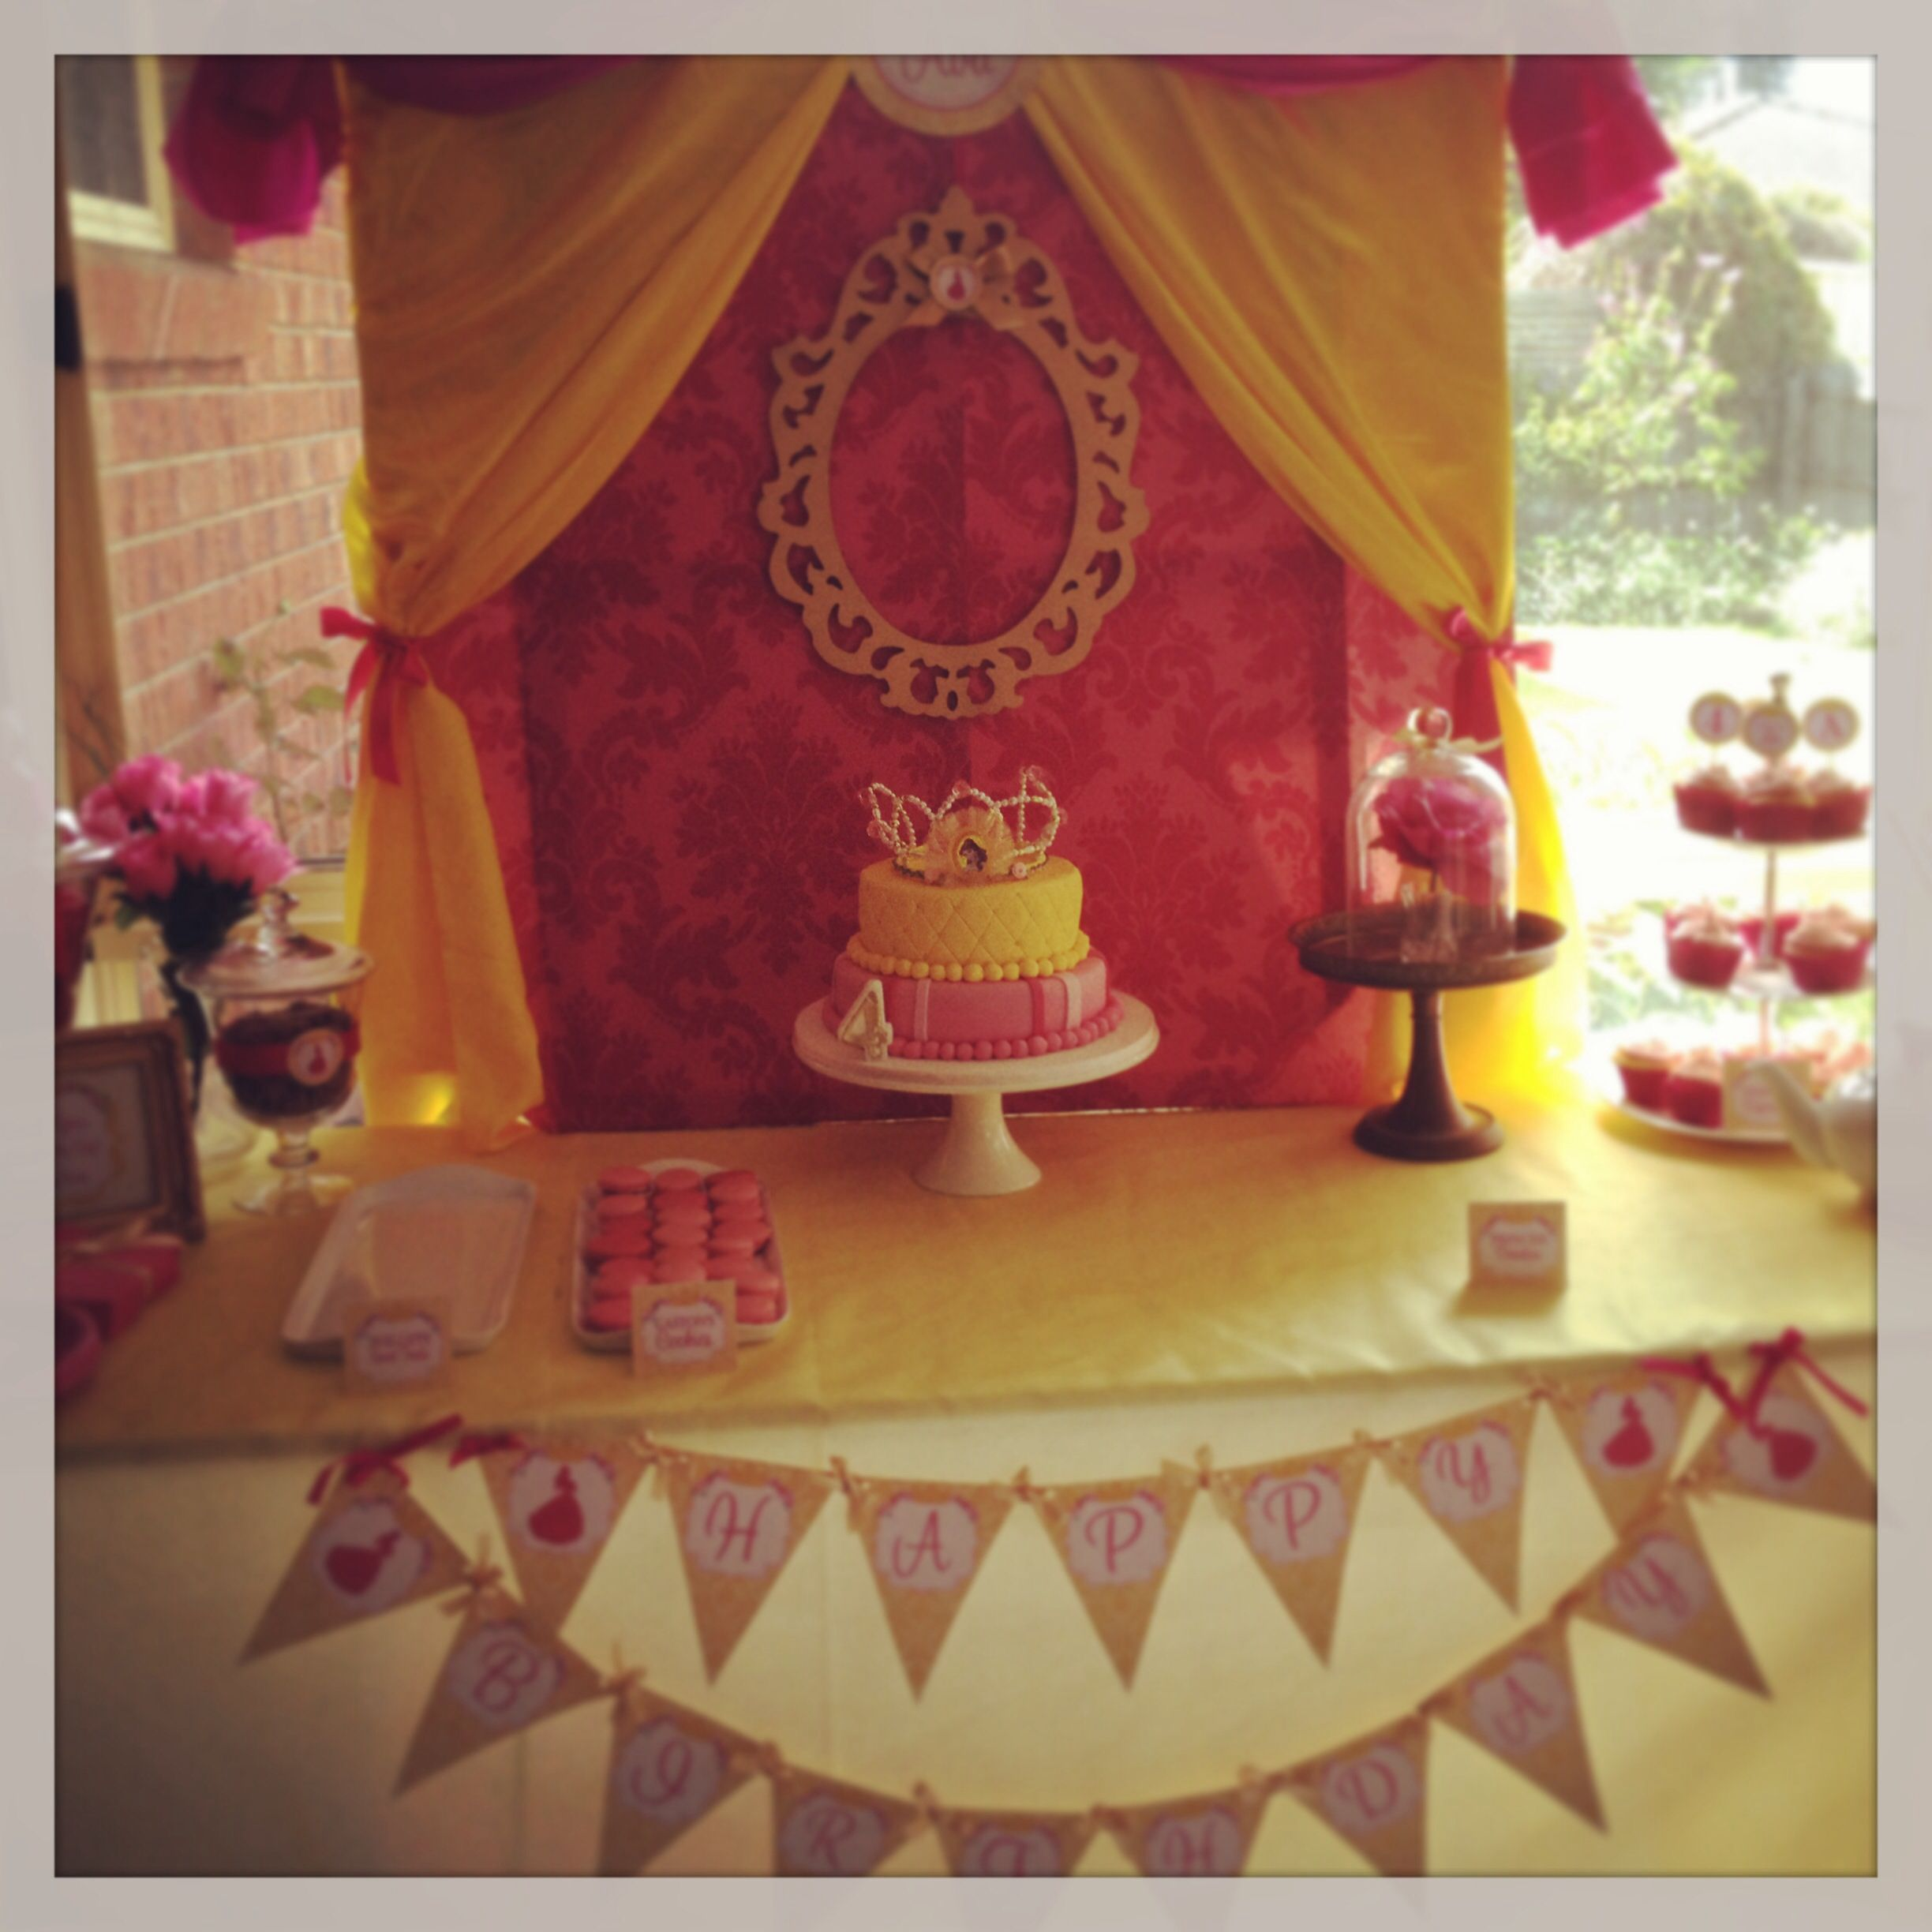 Princess Belle Party Decorations Ava's Princess Belle 4Th Birthday Party Table  Kiyaris' Princess